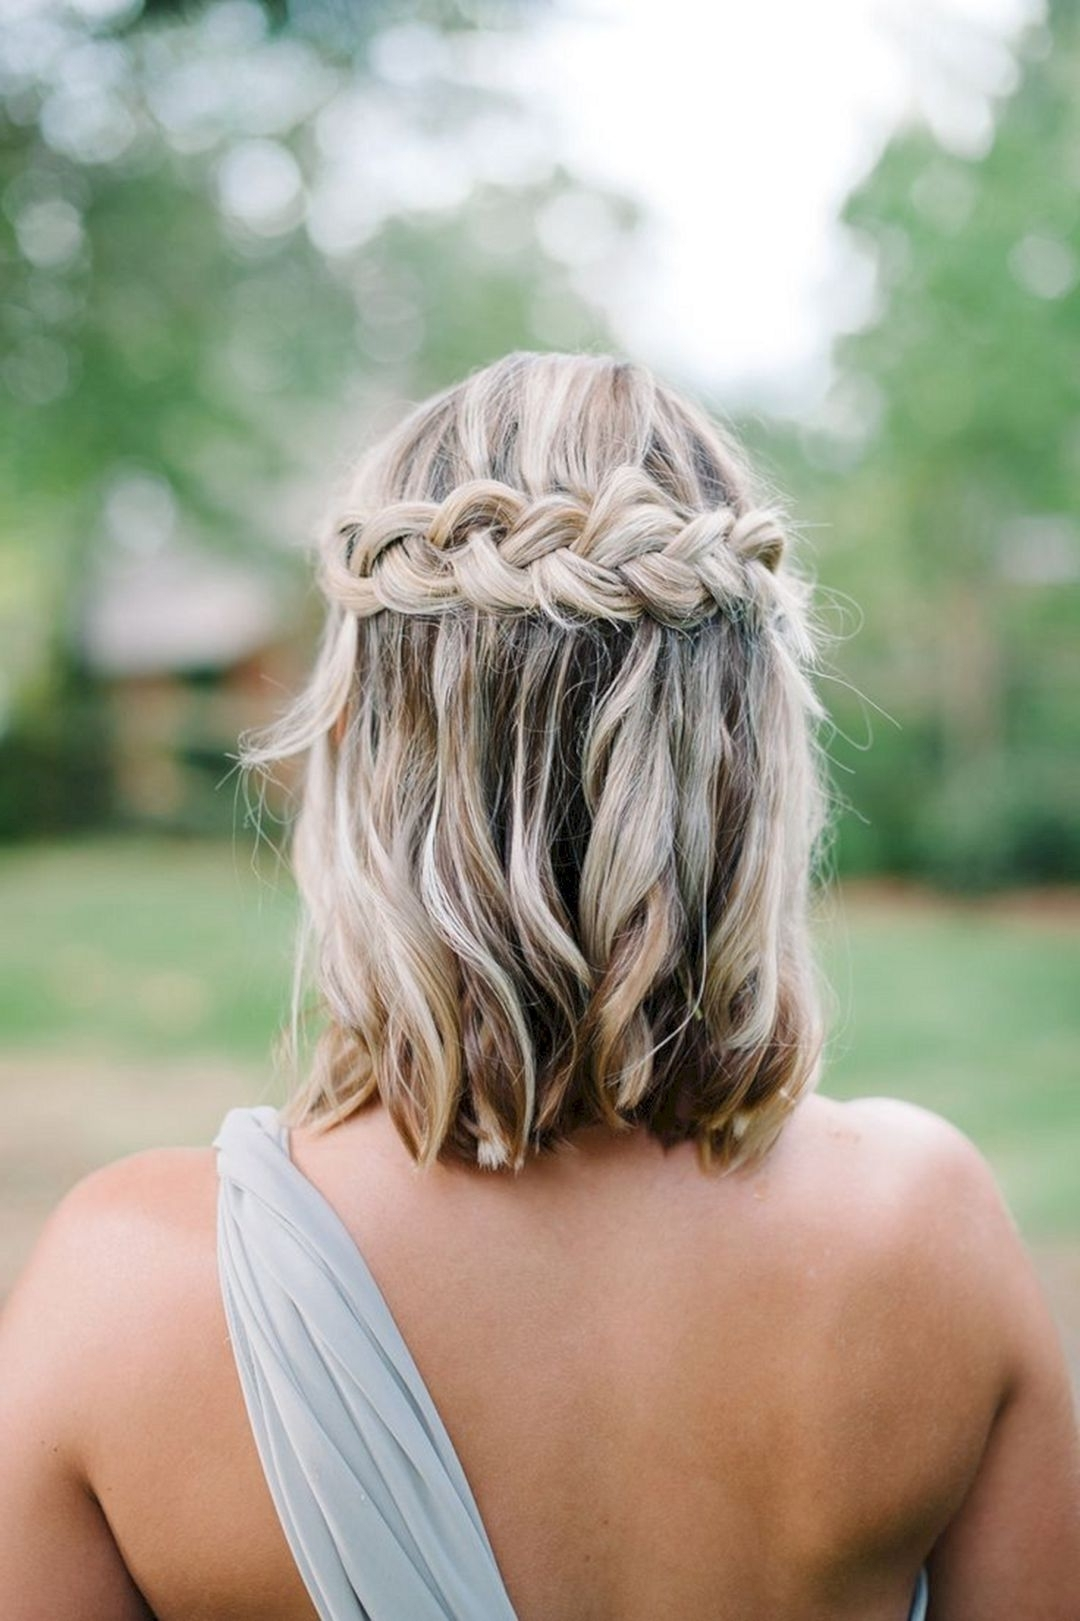 Unbelievable Bridesmaid Hairstyles For Medium Length Hair U Oosile Inside Trendy Wedding Hairstyles For Bridesmaids (Gallery 11 of 15)